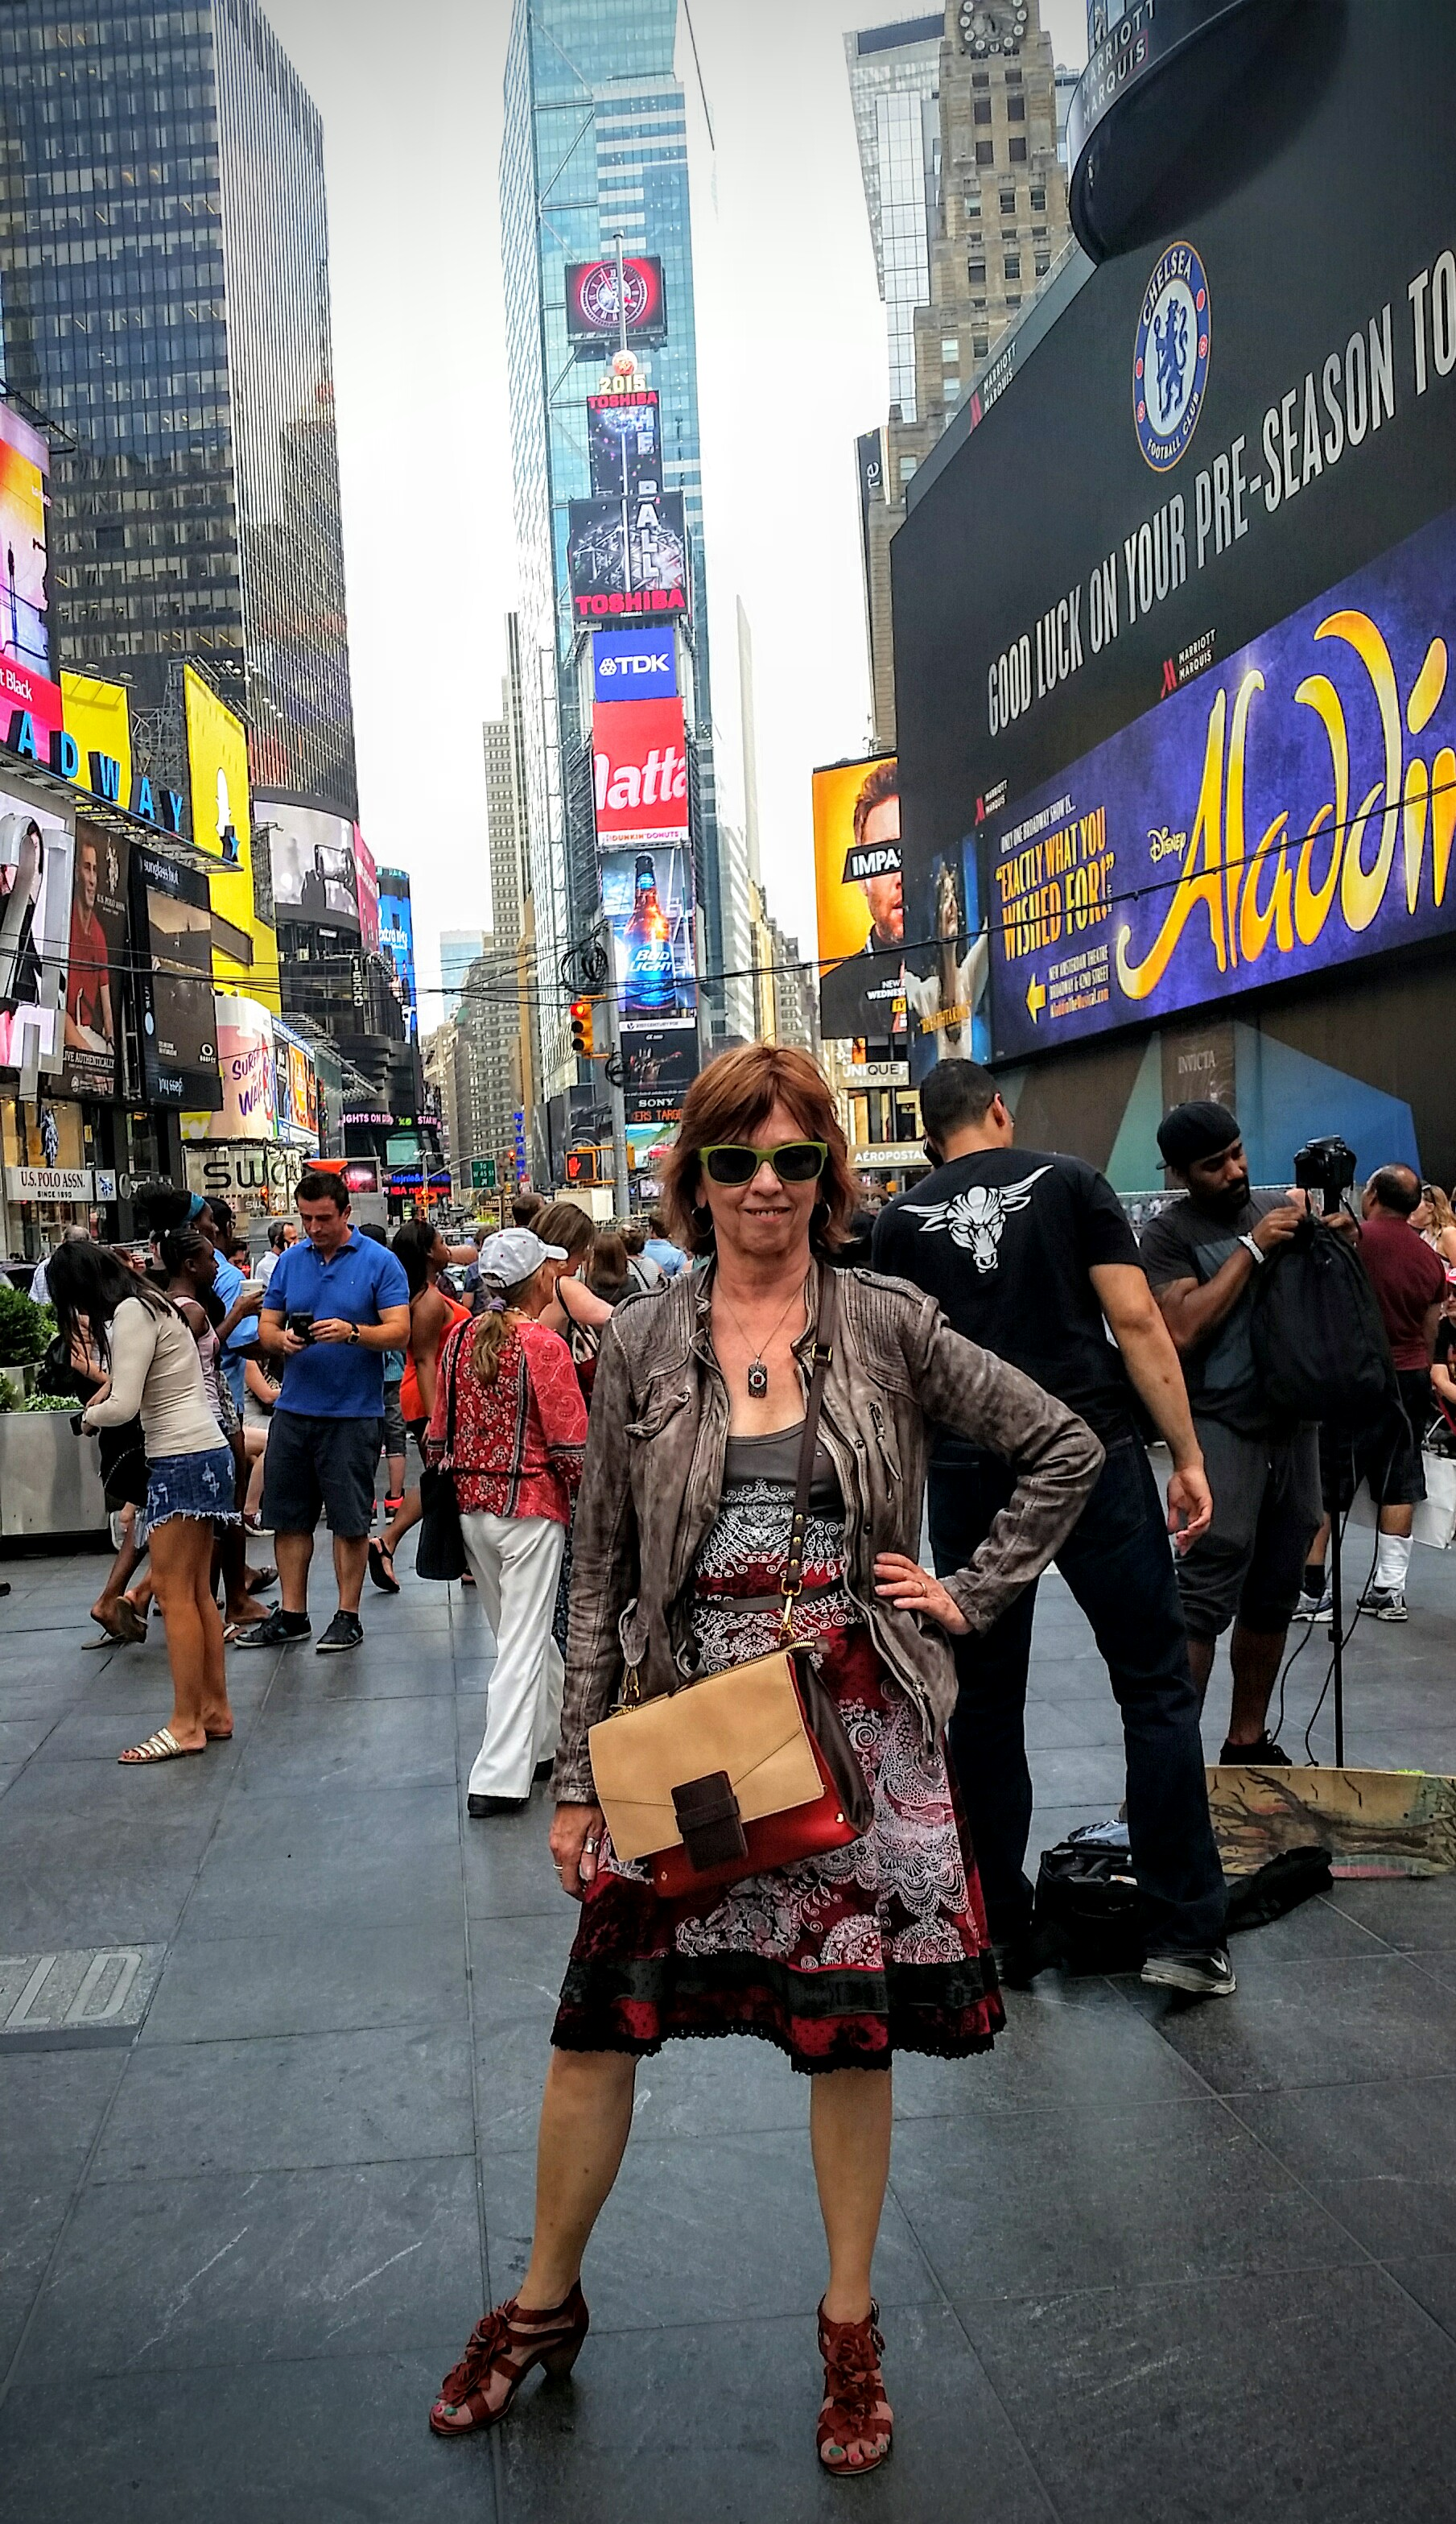 Nora/JD in Times Square.